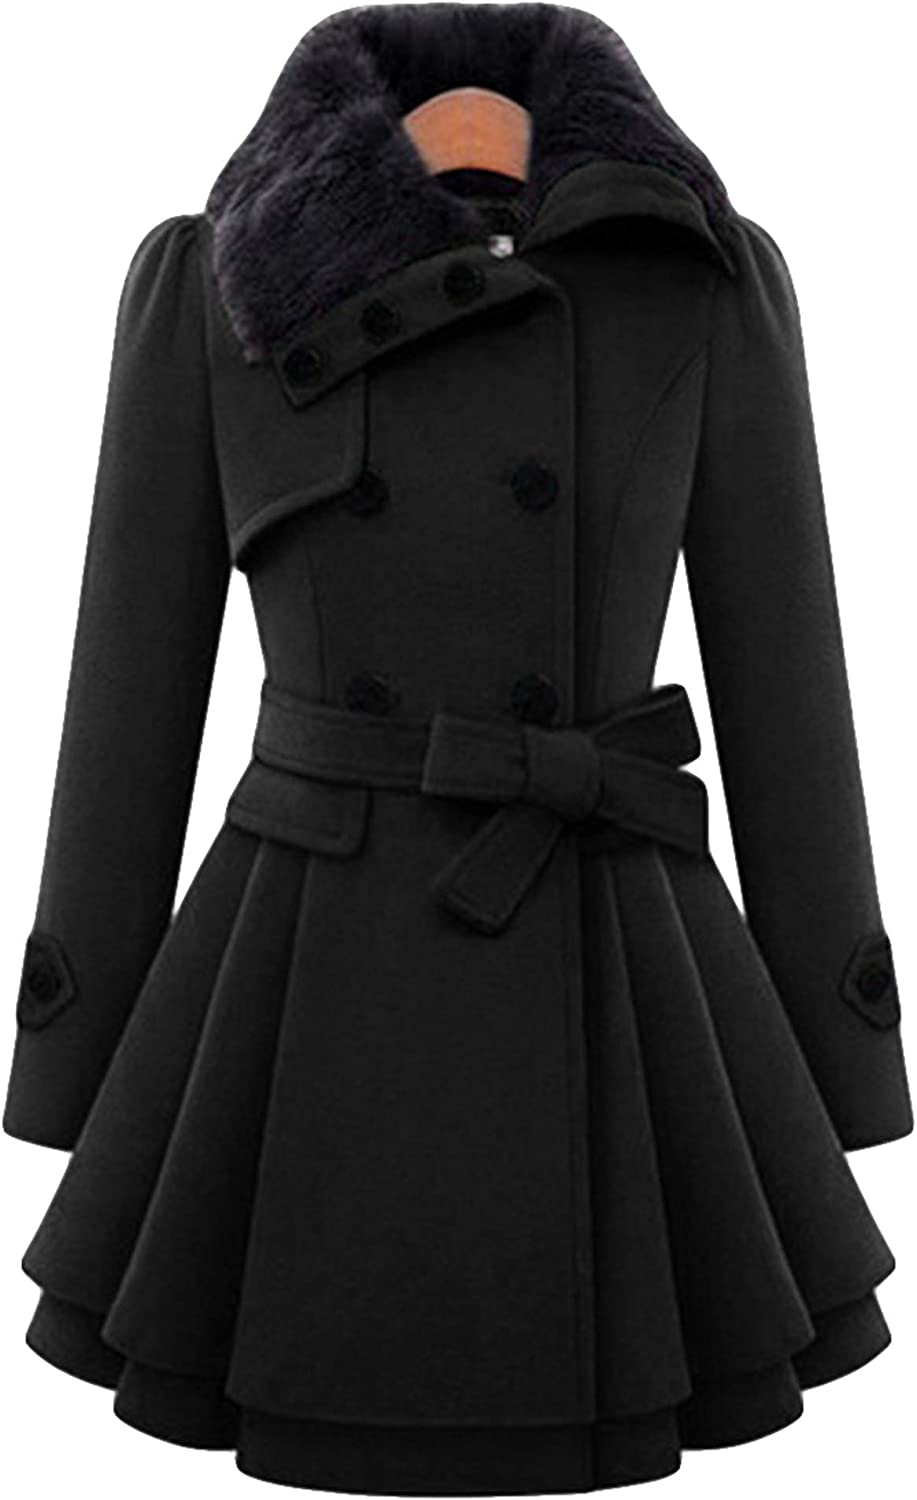 ZICUE Womens Double Breasted Pea Coat Winter Mid-Long Hooded Slim Fitted Jackets with Belted